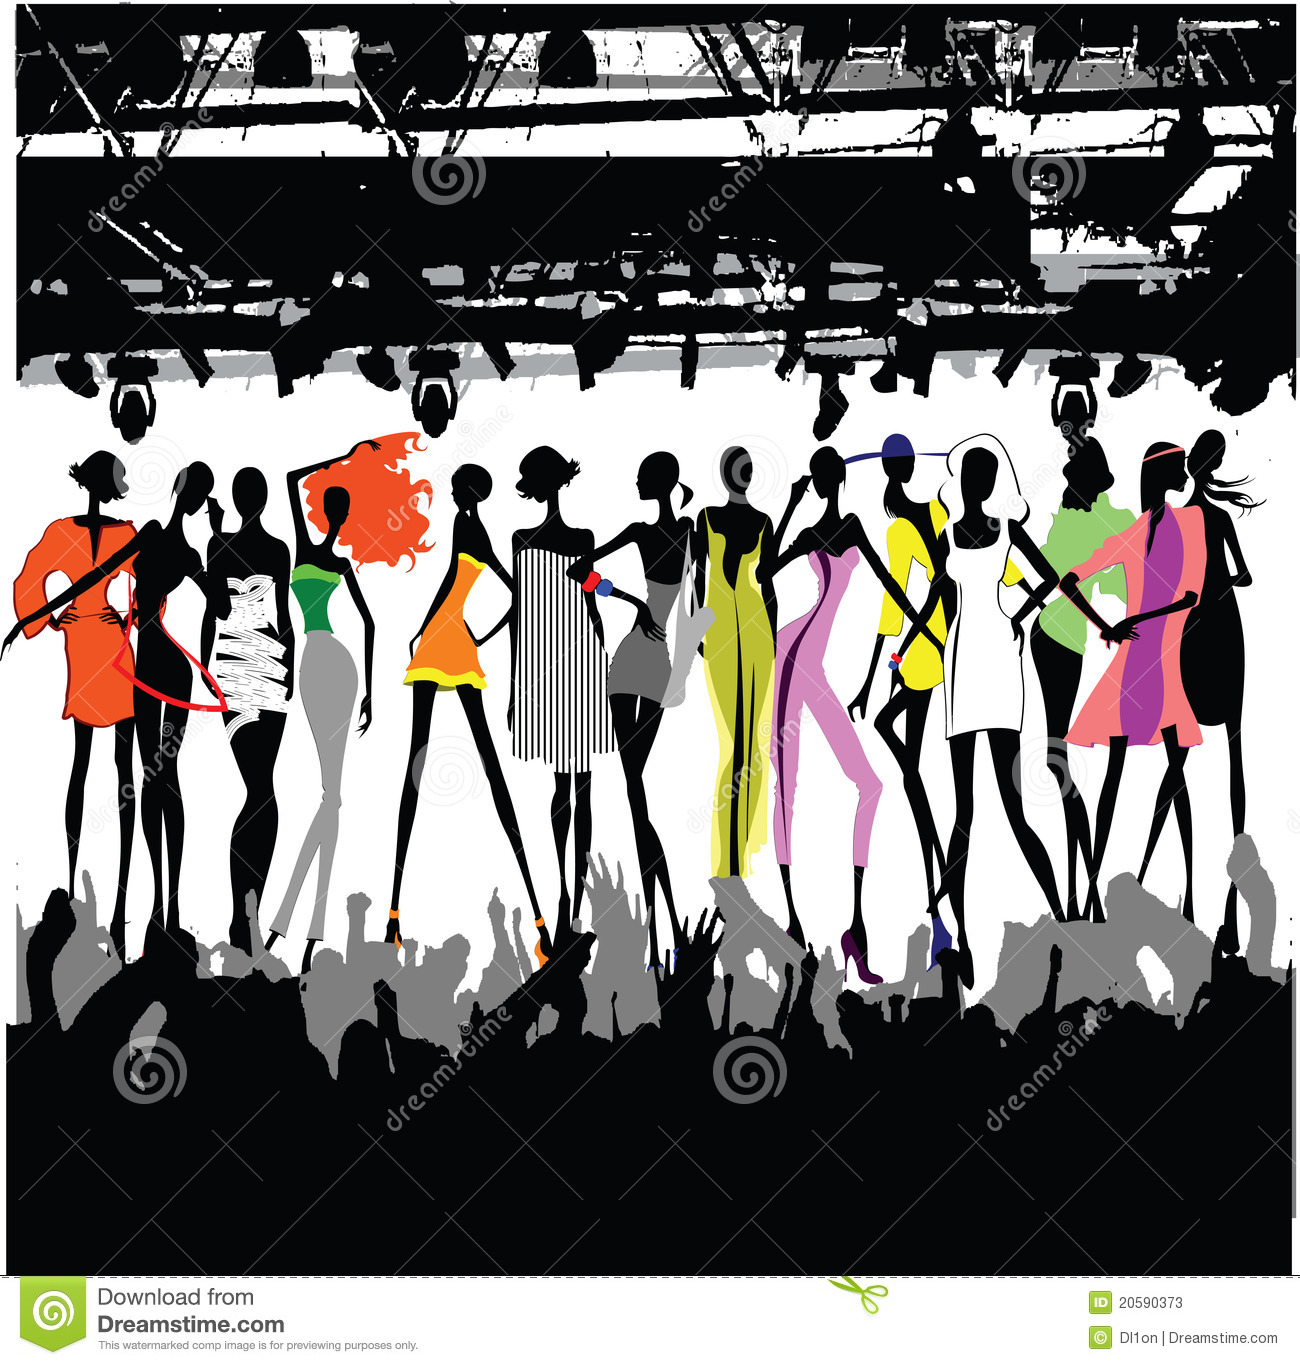 Fashion Show Crowd Stock Photos - Image: 20590373